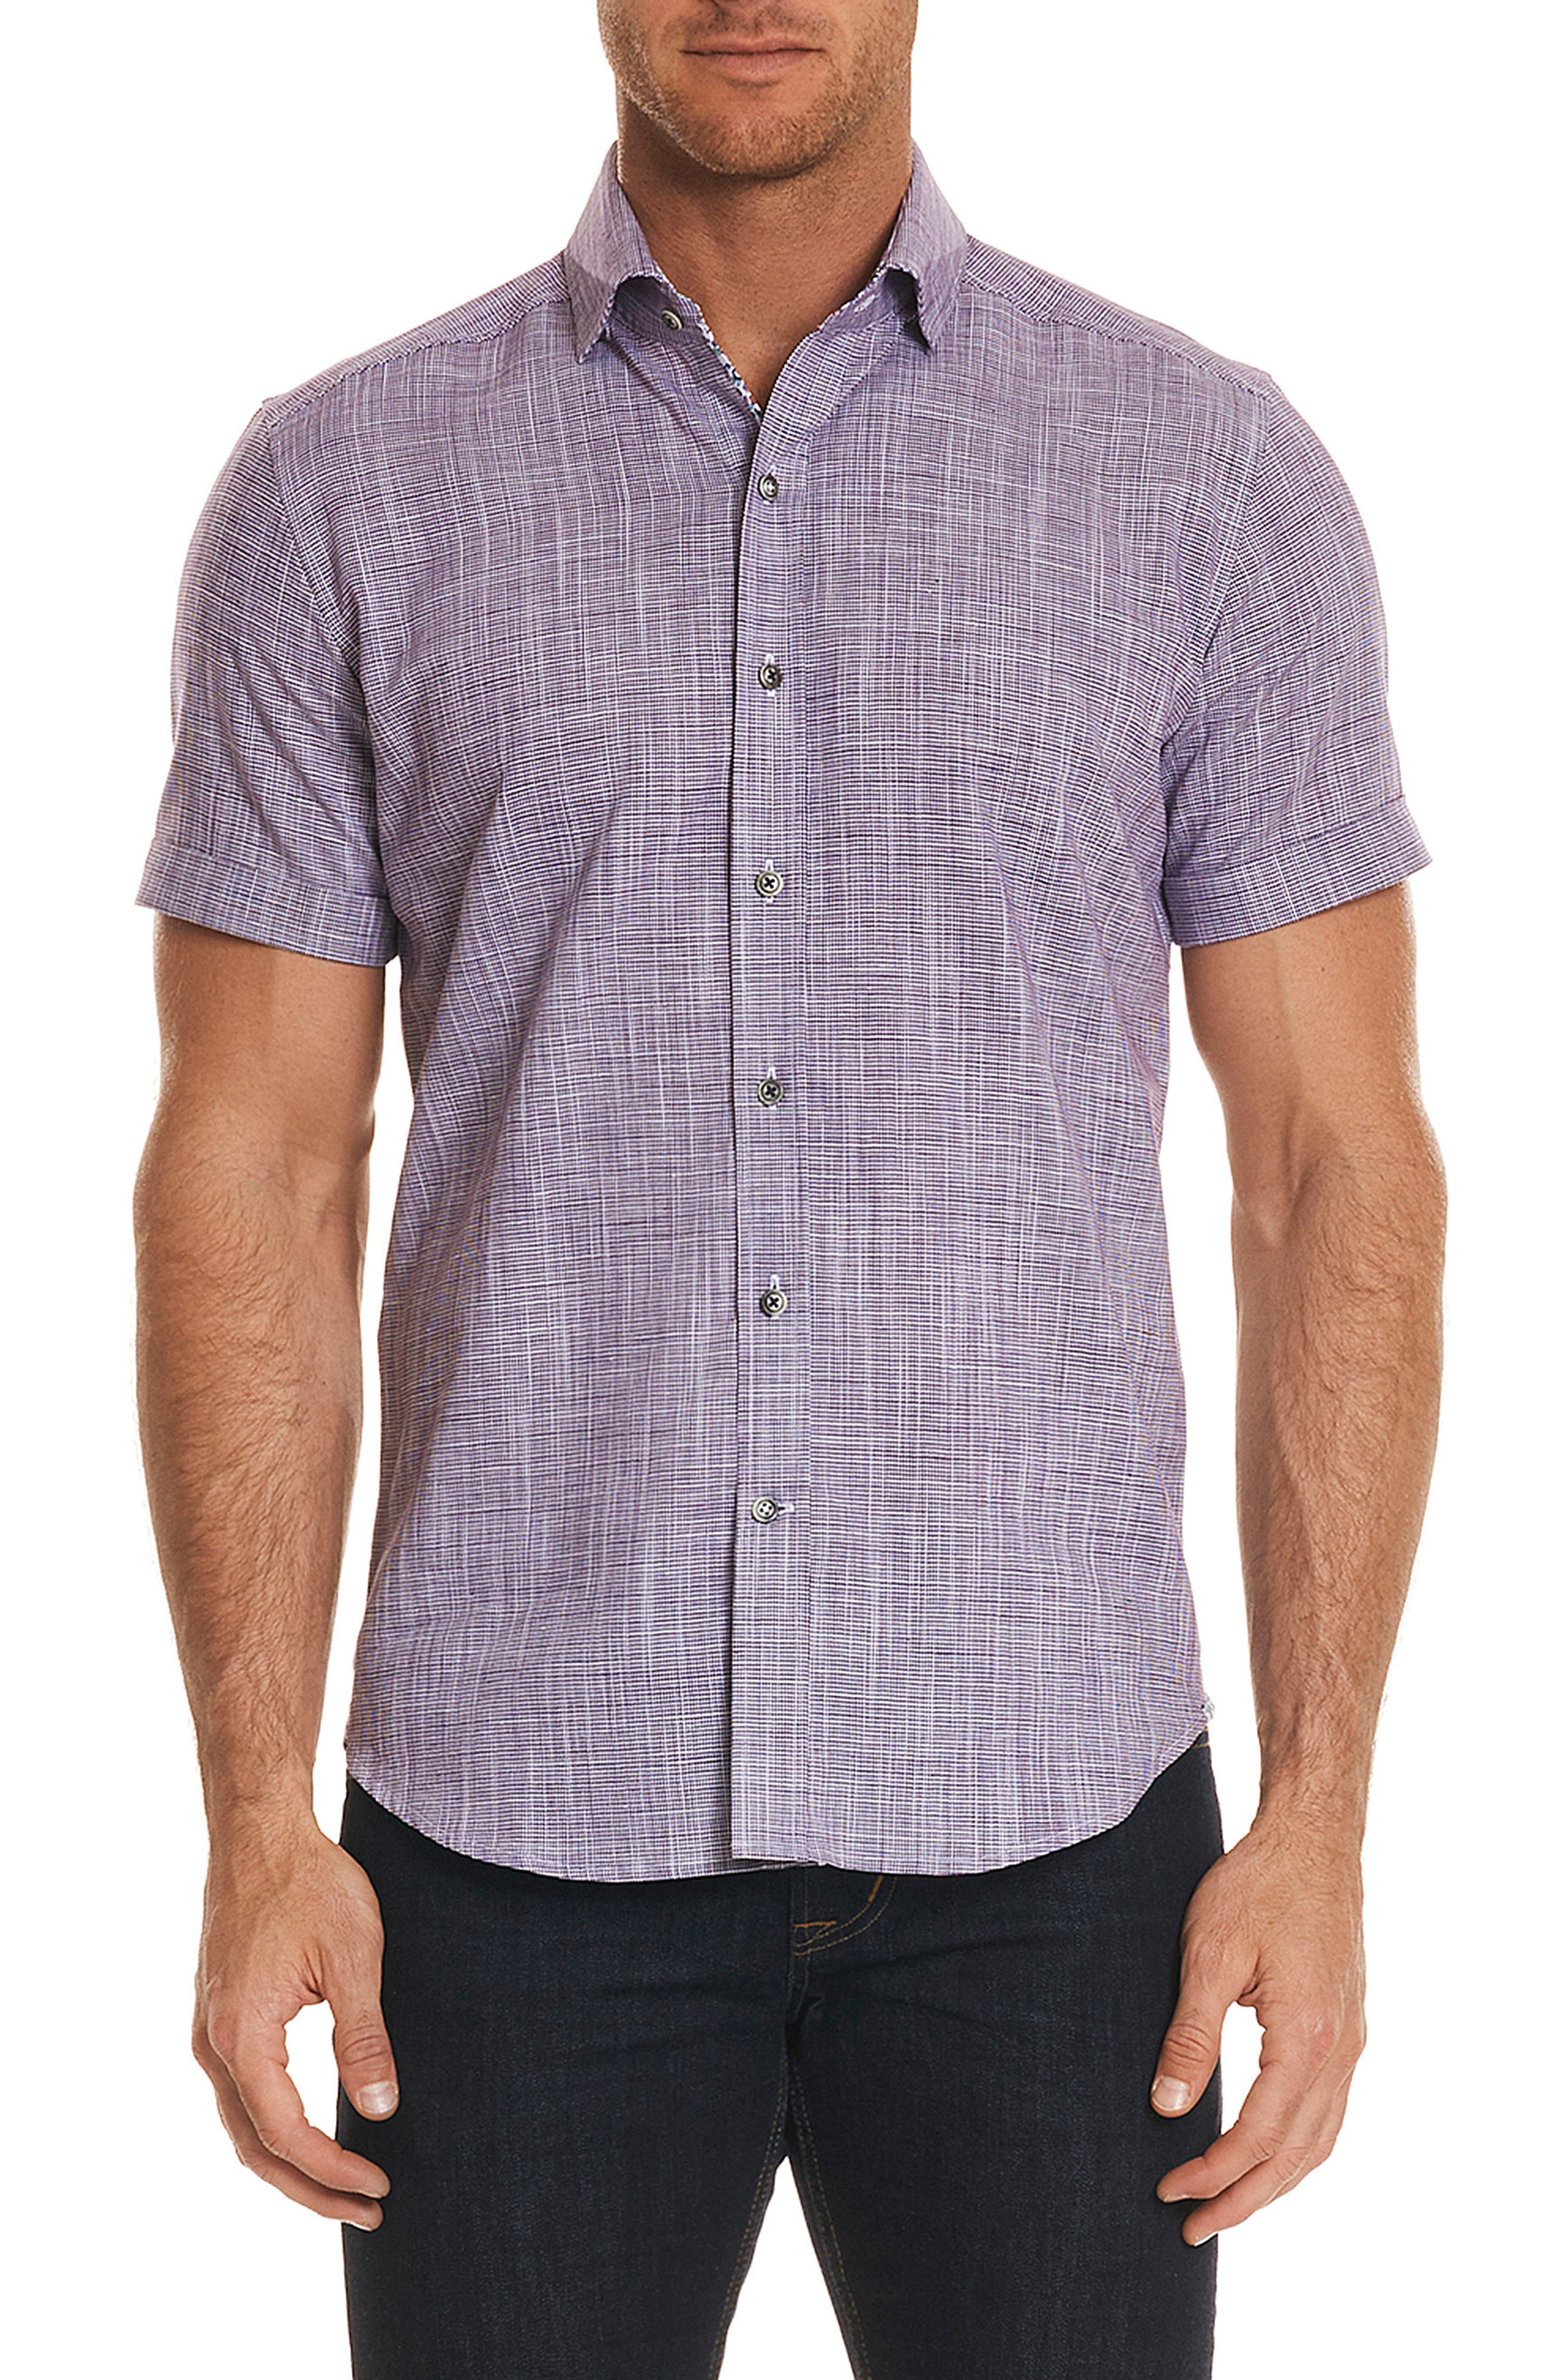 Isia Tailored Fit Sport Shirt,                             Main thumbnail 1, color,                             PURPLE